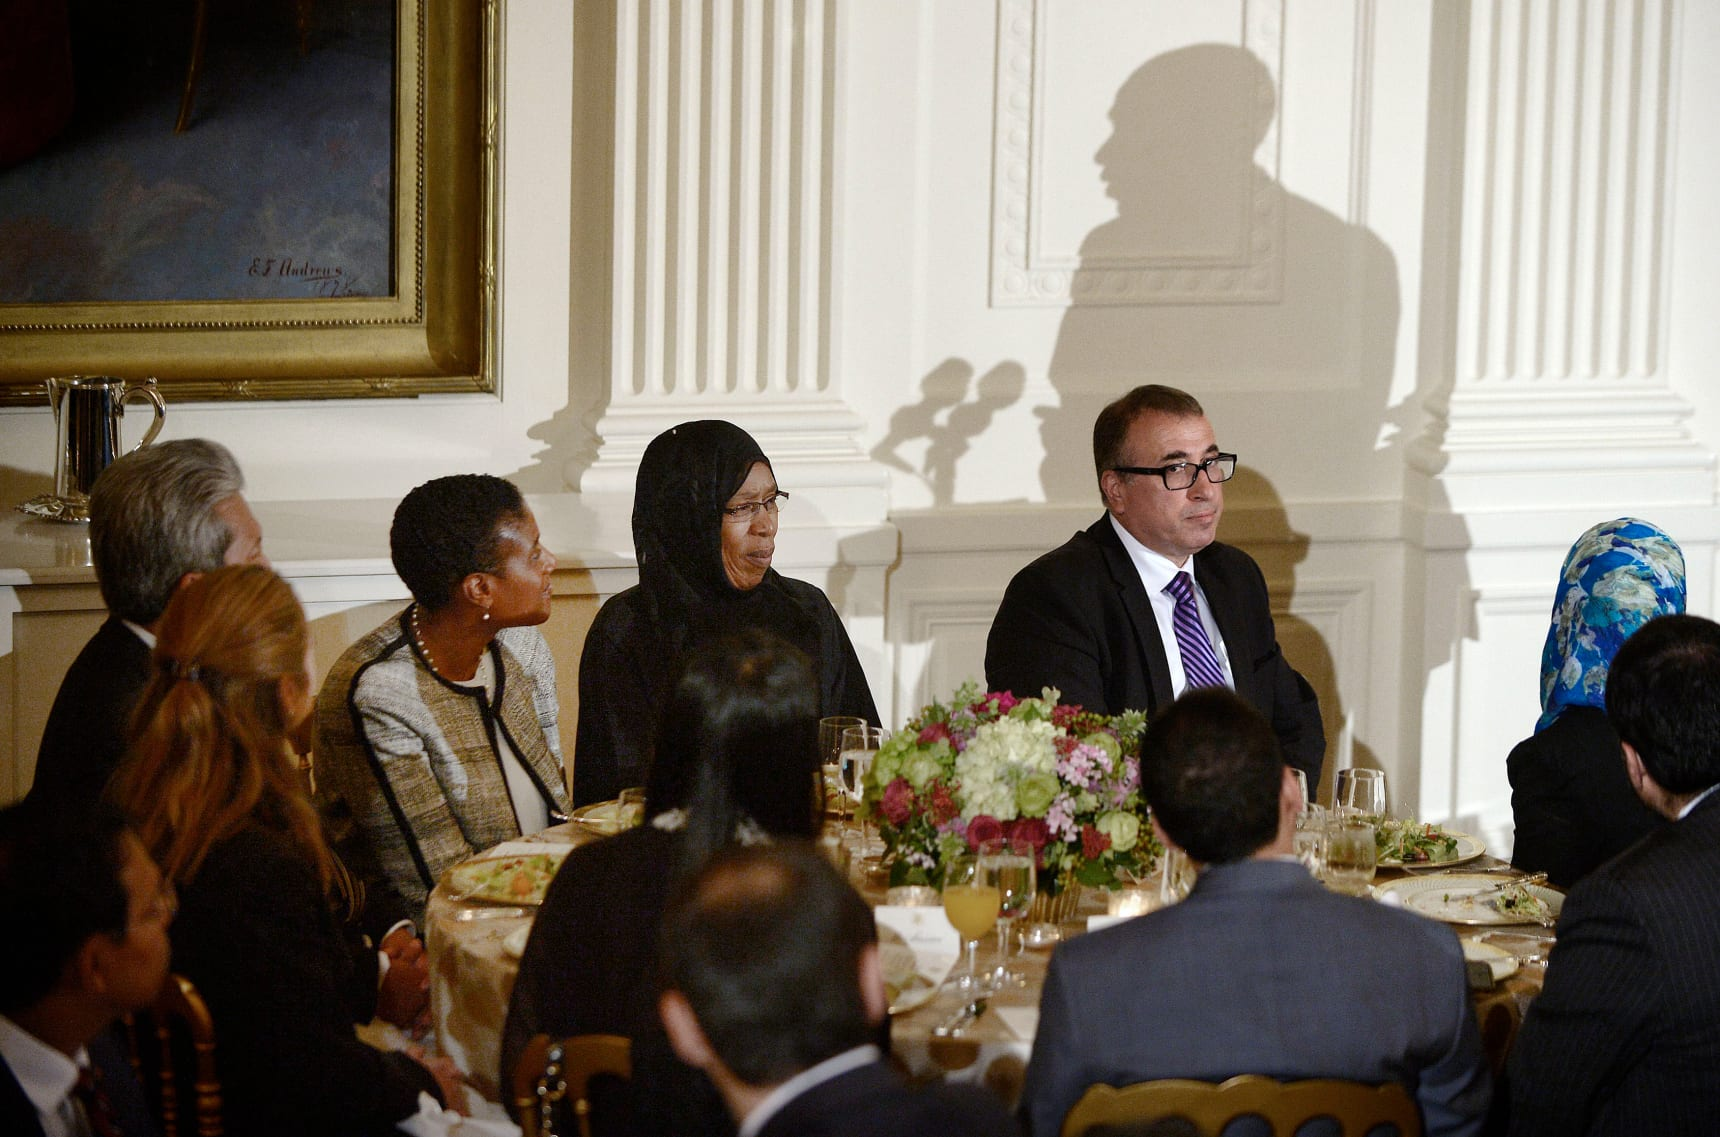 Muslim Americans Are Perplexed by News of a White House Ramadan Dinner